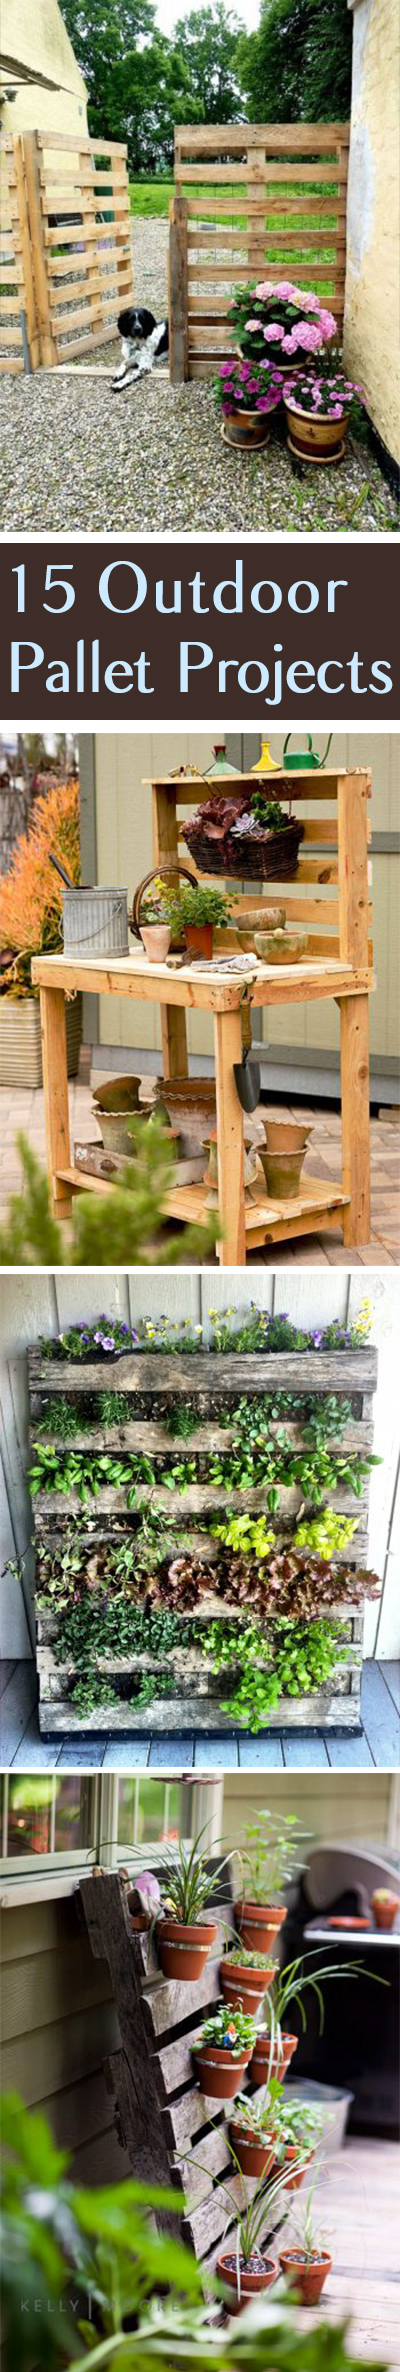 Pallet Projects, Outdoor Pallet Projects, Pallet Project TIps and Tricks, Outdoor Projects, How to Reuse Pallets, Using Pallets in the Garden, Outdoor Living, Outdoor Living Ideas, Popular Pin